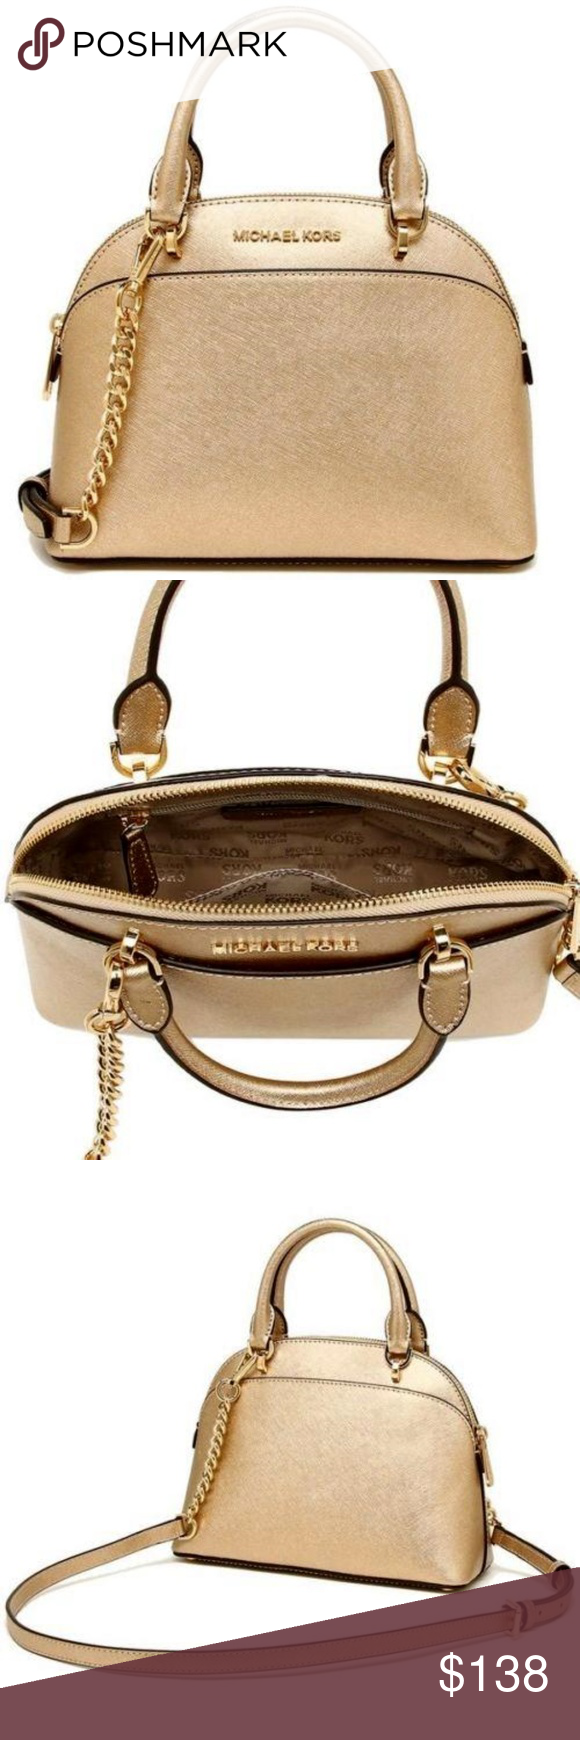 Michael Kors Emmy Small Dome Satchel 100% Authentic Michael Kors! Buy with  confidence! 5b11426be905f